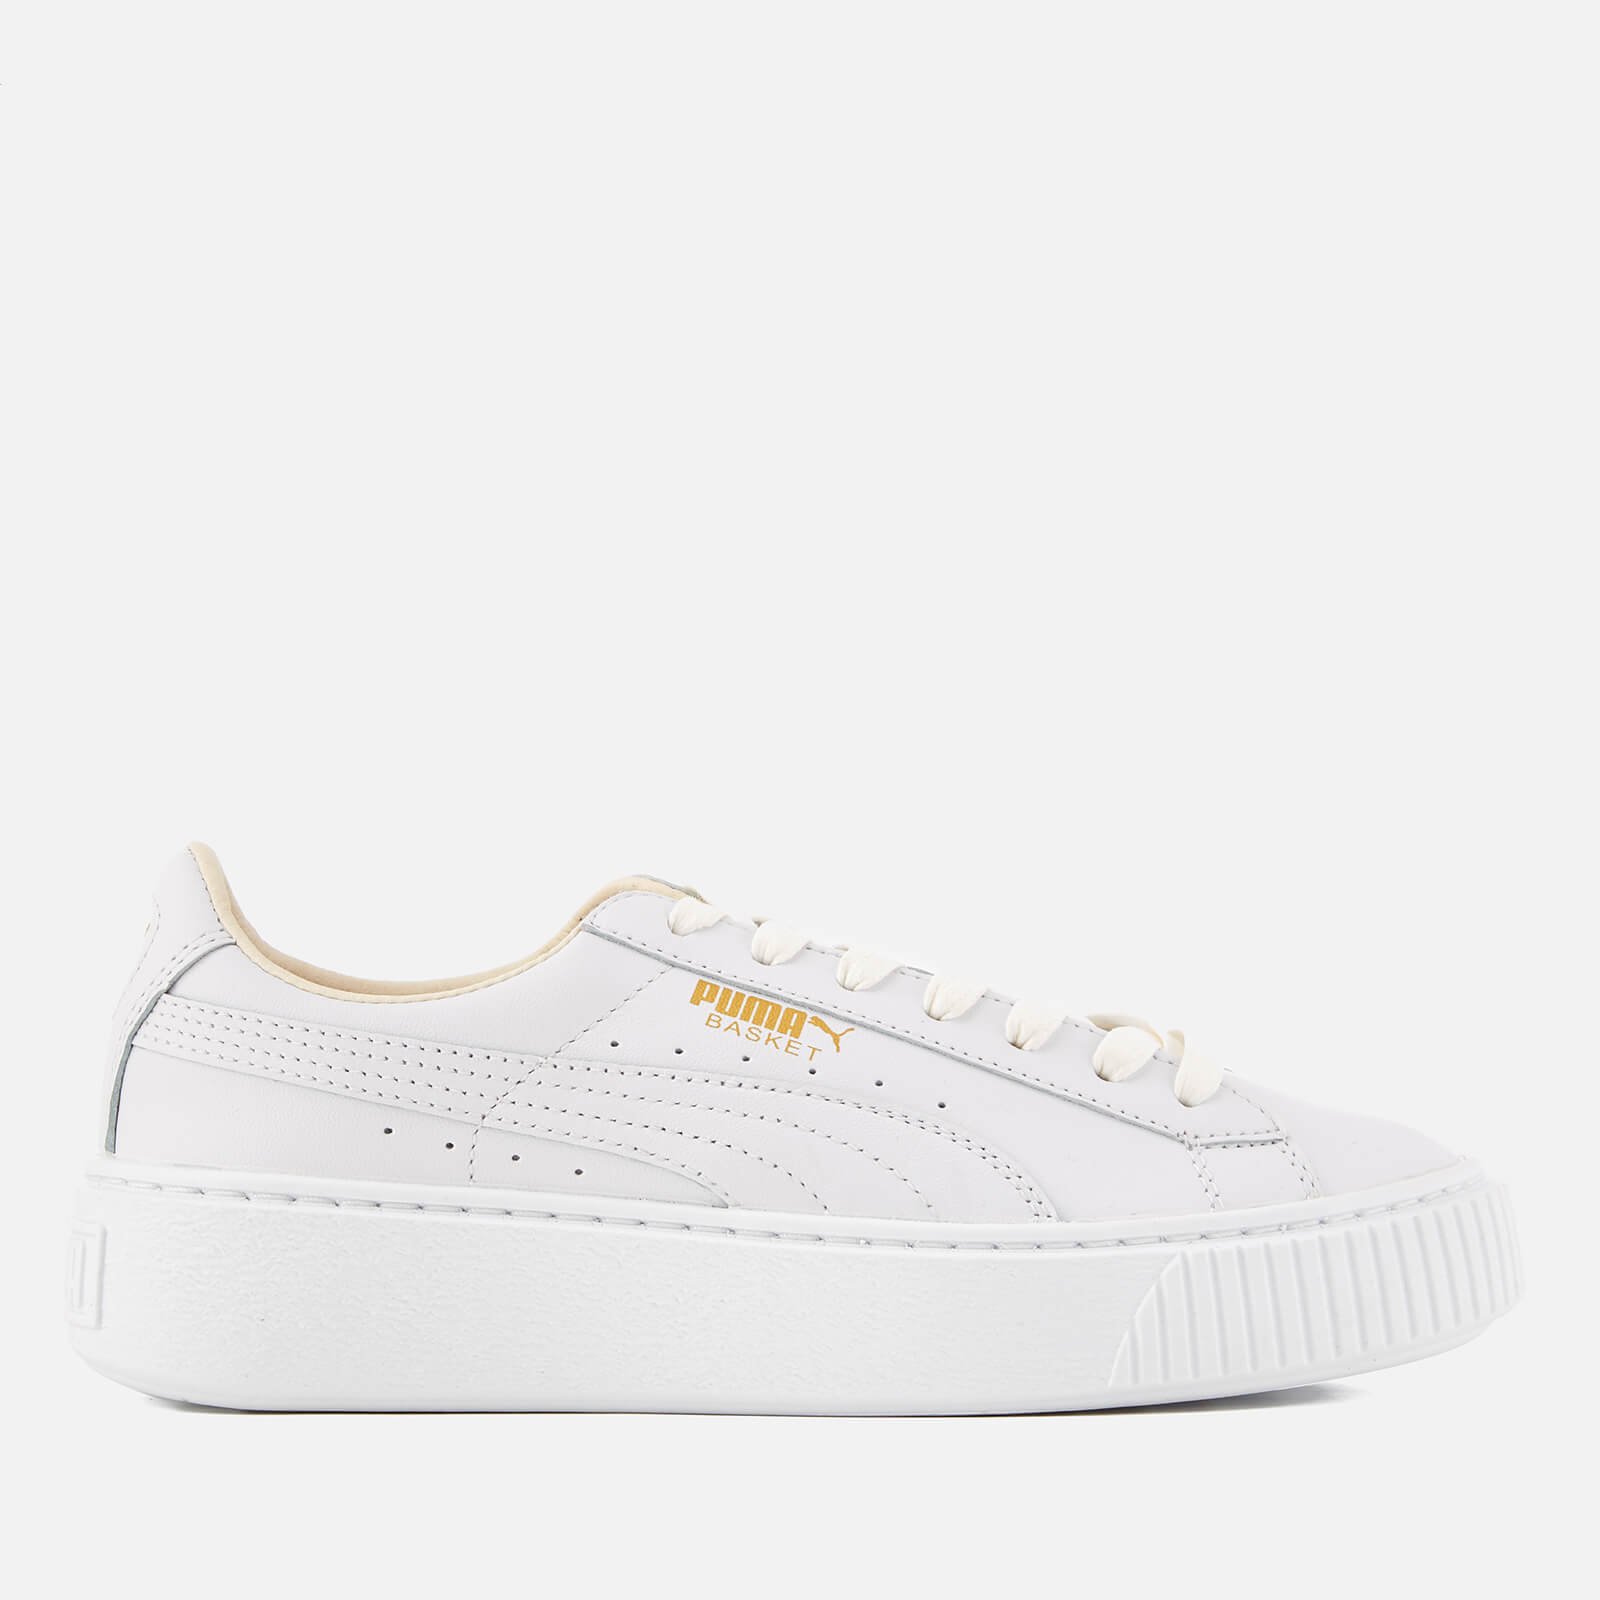 Puma Women s Basket Platform Core Trainers - Puma White Gold - Free UK  Delivery over £50 45d48c707